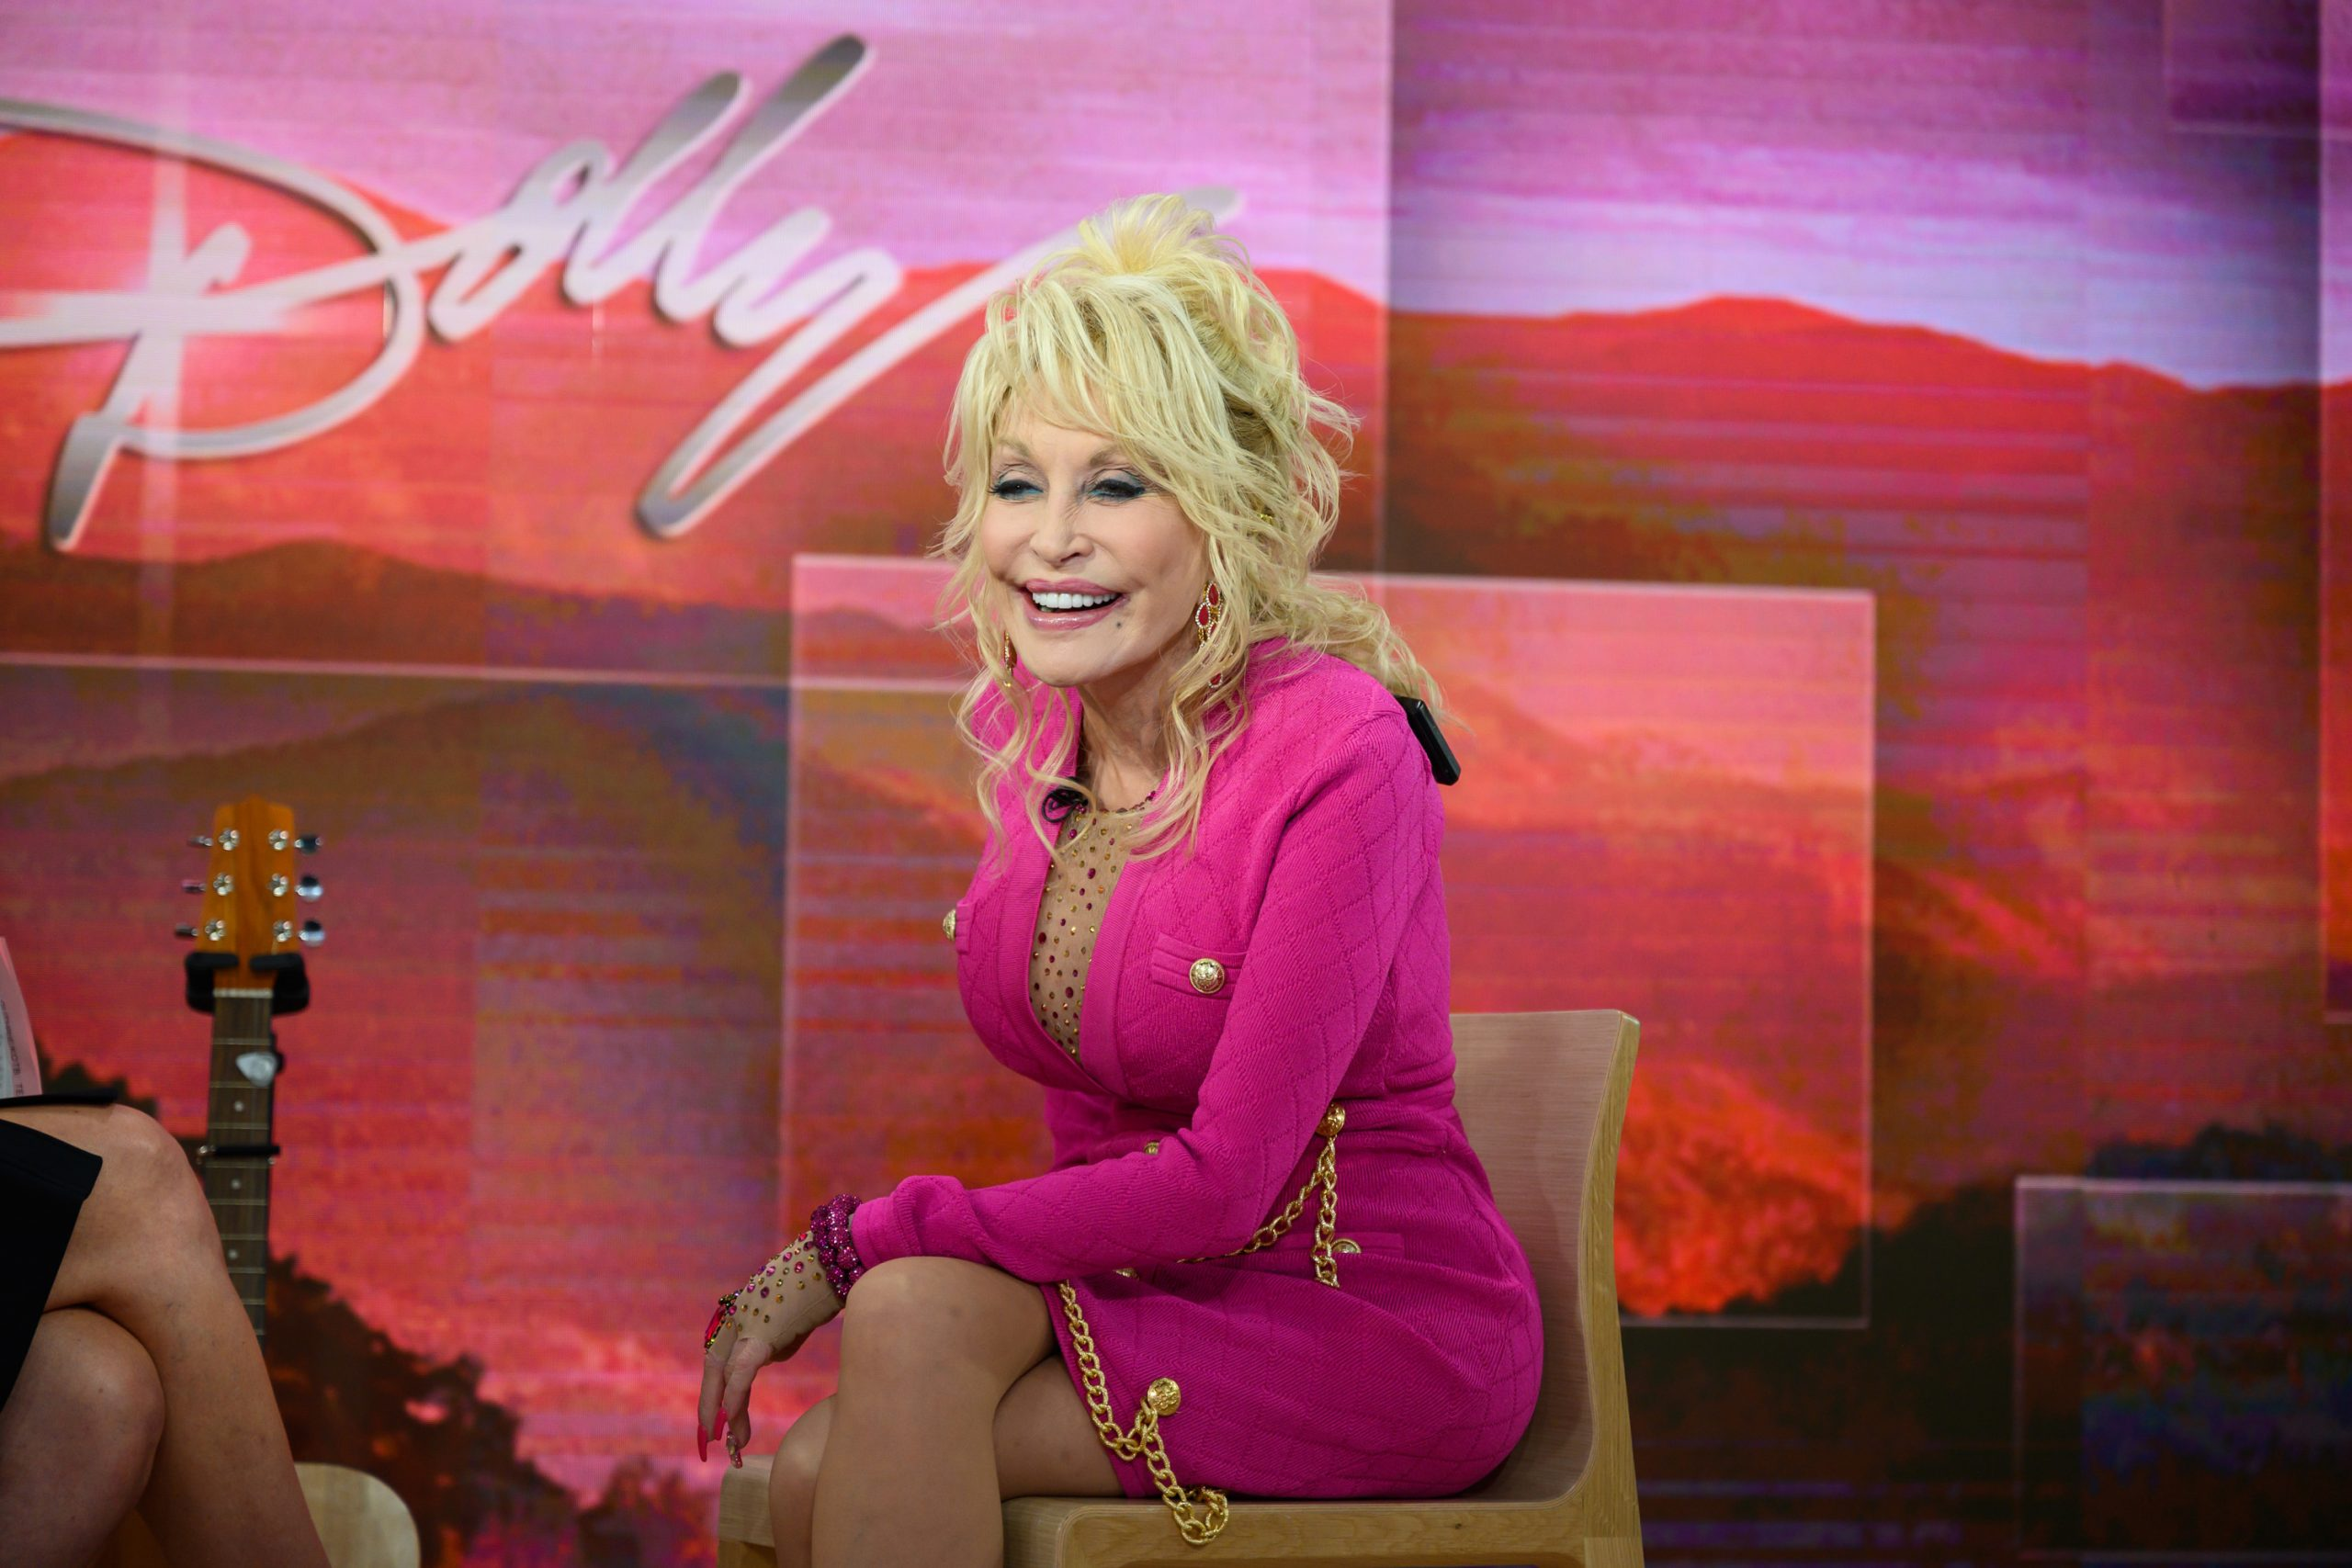 Dolly Parton wearing a bright pink dress on the Today show in 2019